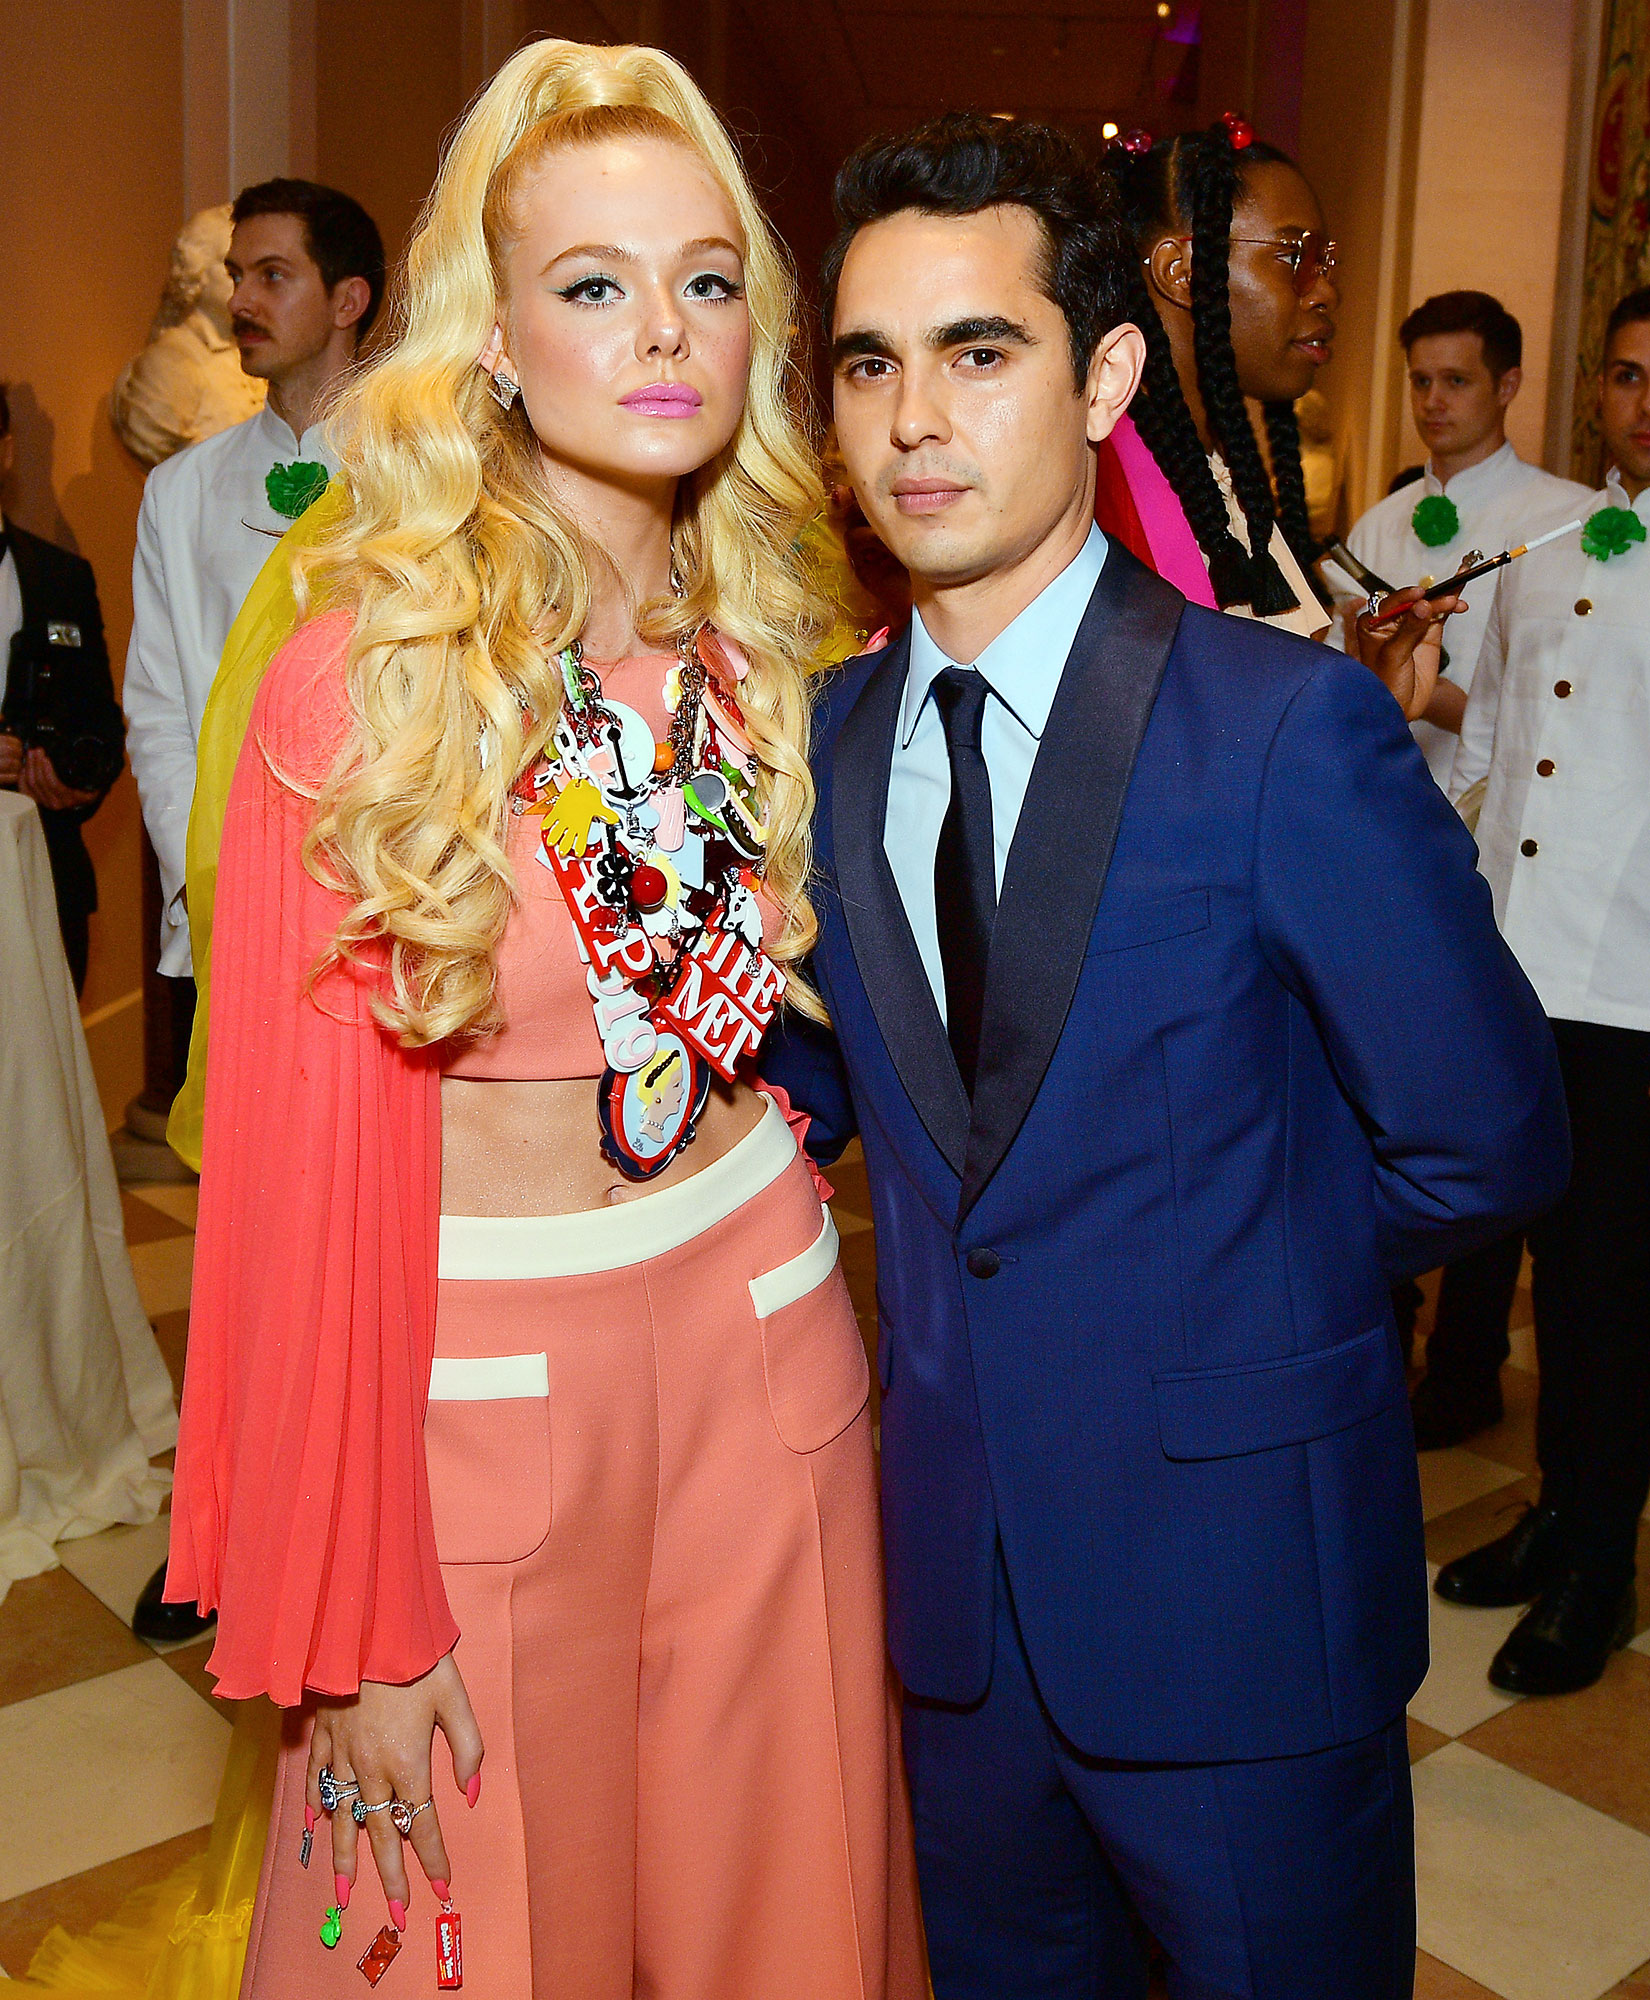 Met Gala 2019 What You Didnt See Elle Fanning Max Minghella - Rumored couple Elle Fanning and Max Minghella played it cool inside the cocktail hour.